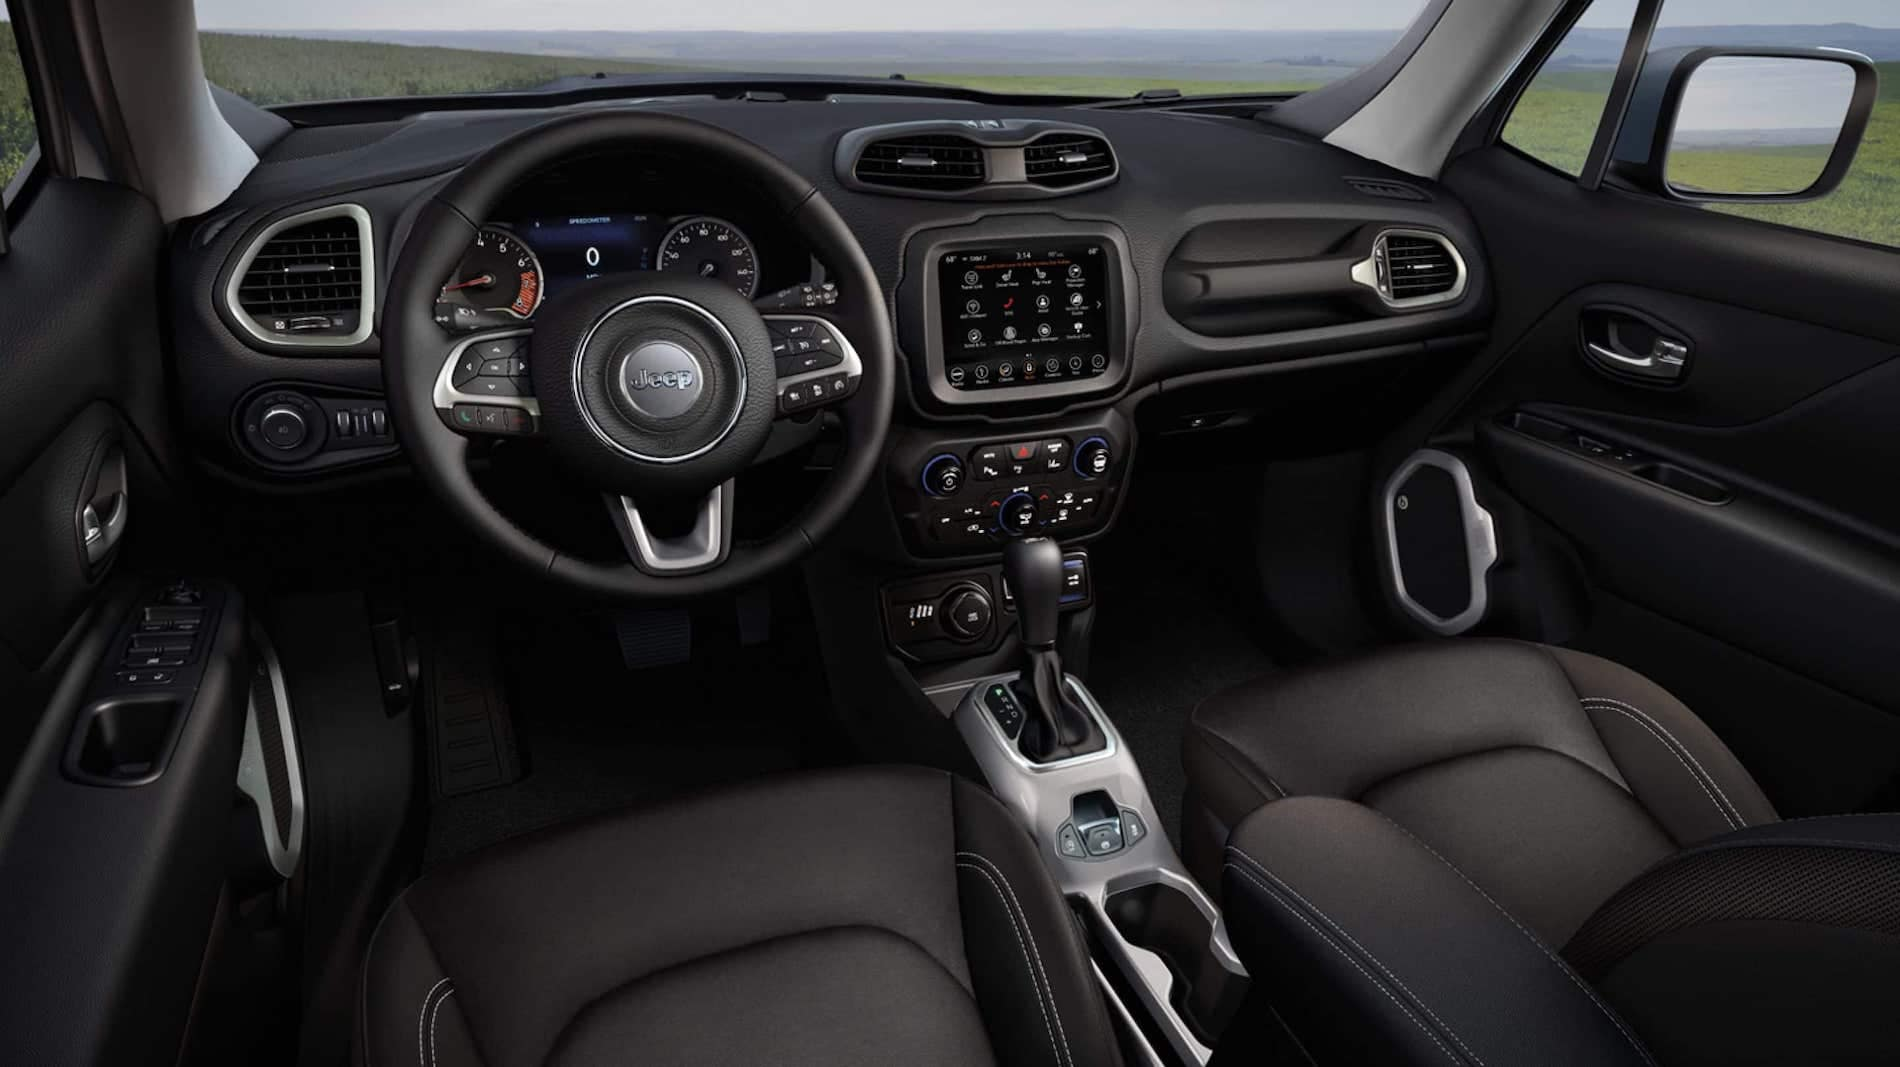 2021 jeep renegade infotainment system available in Salisbury MD